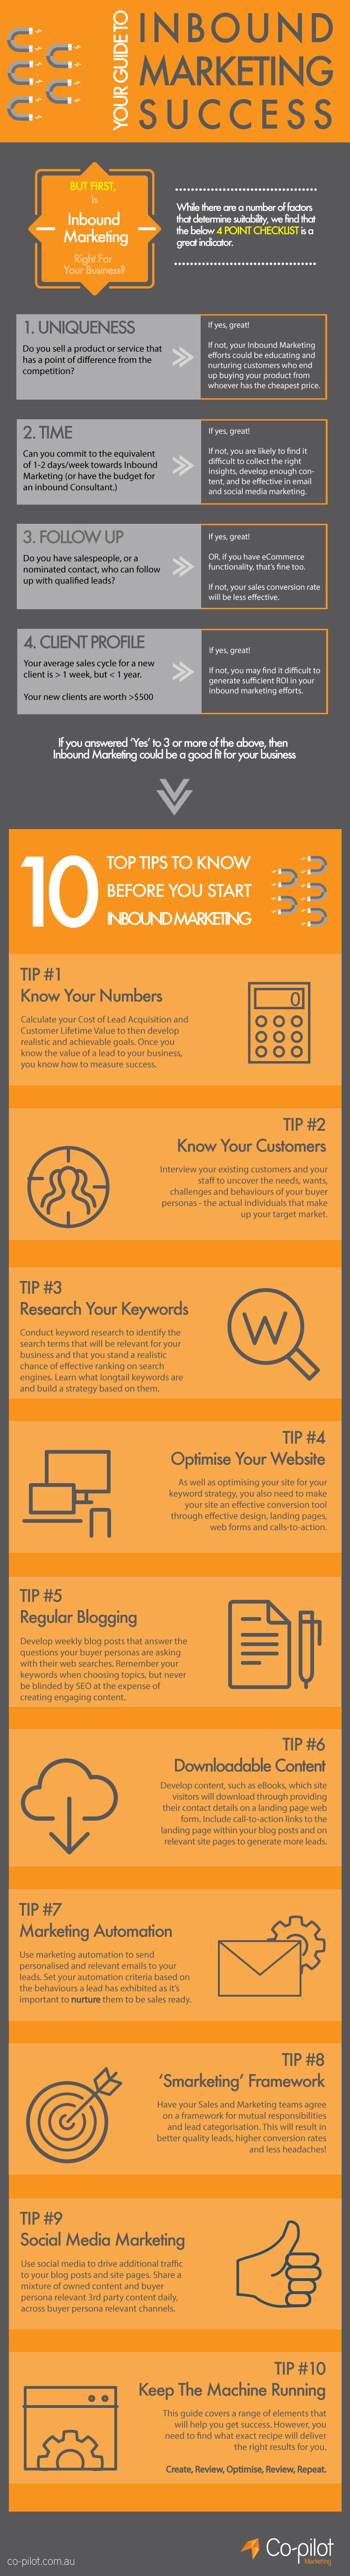 Inbound-Marketing-Success-Infographic.jpg